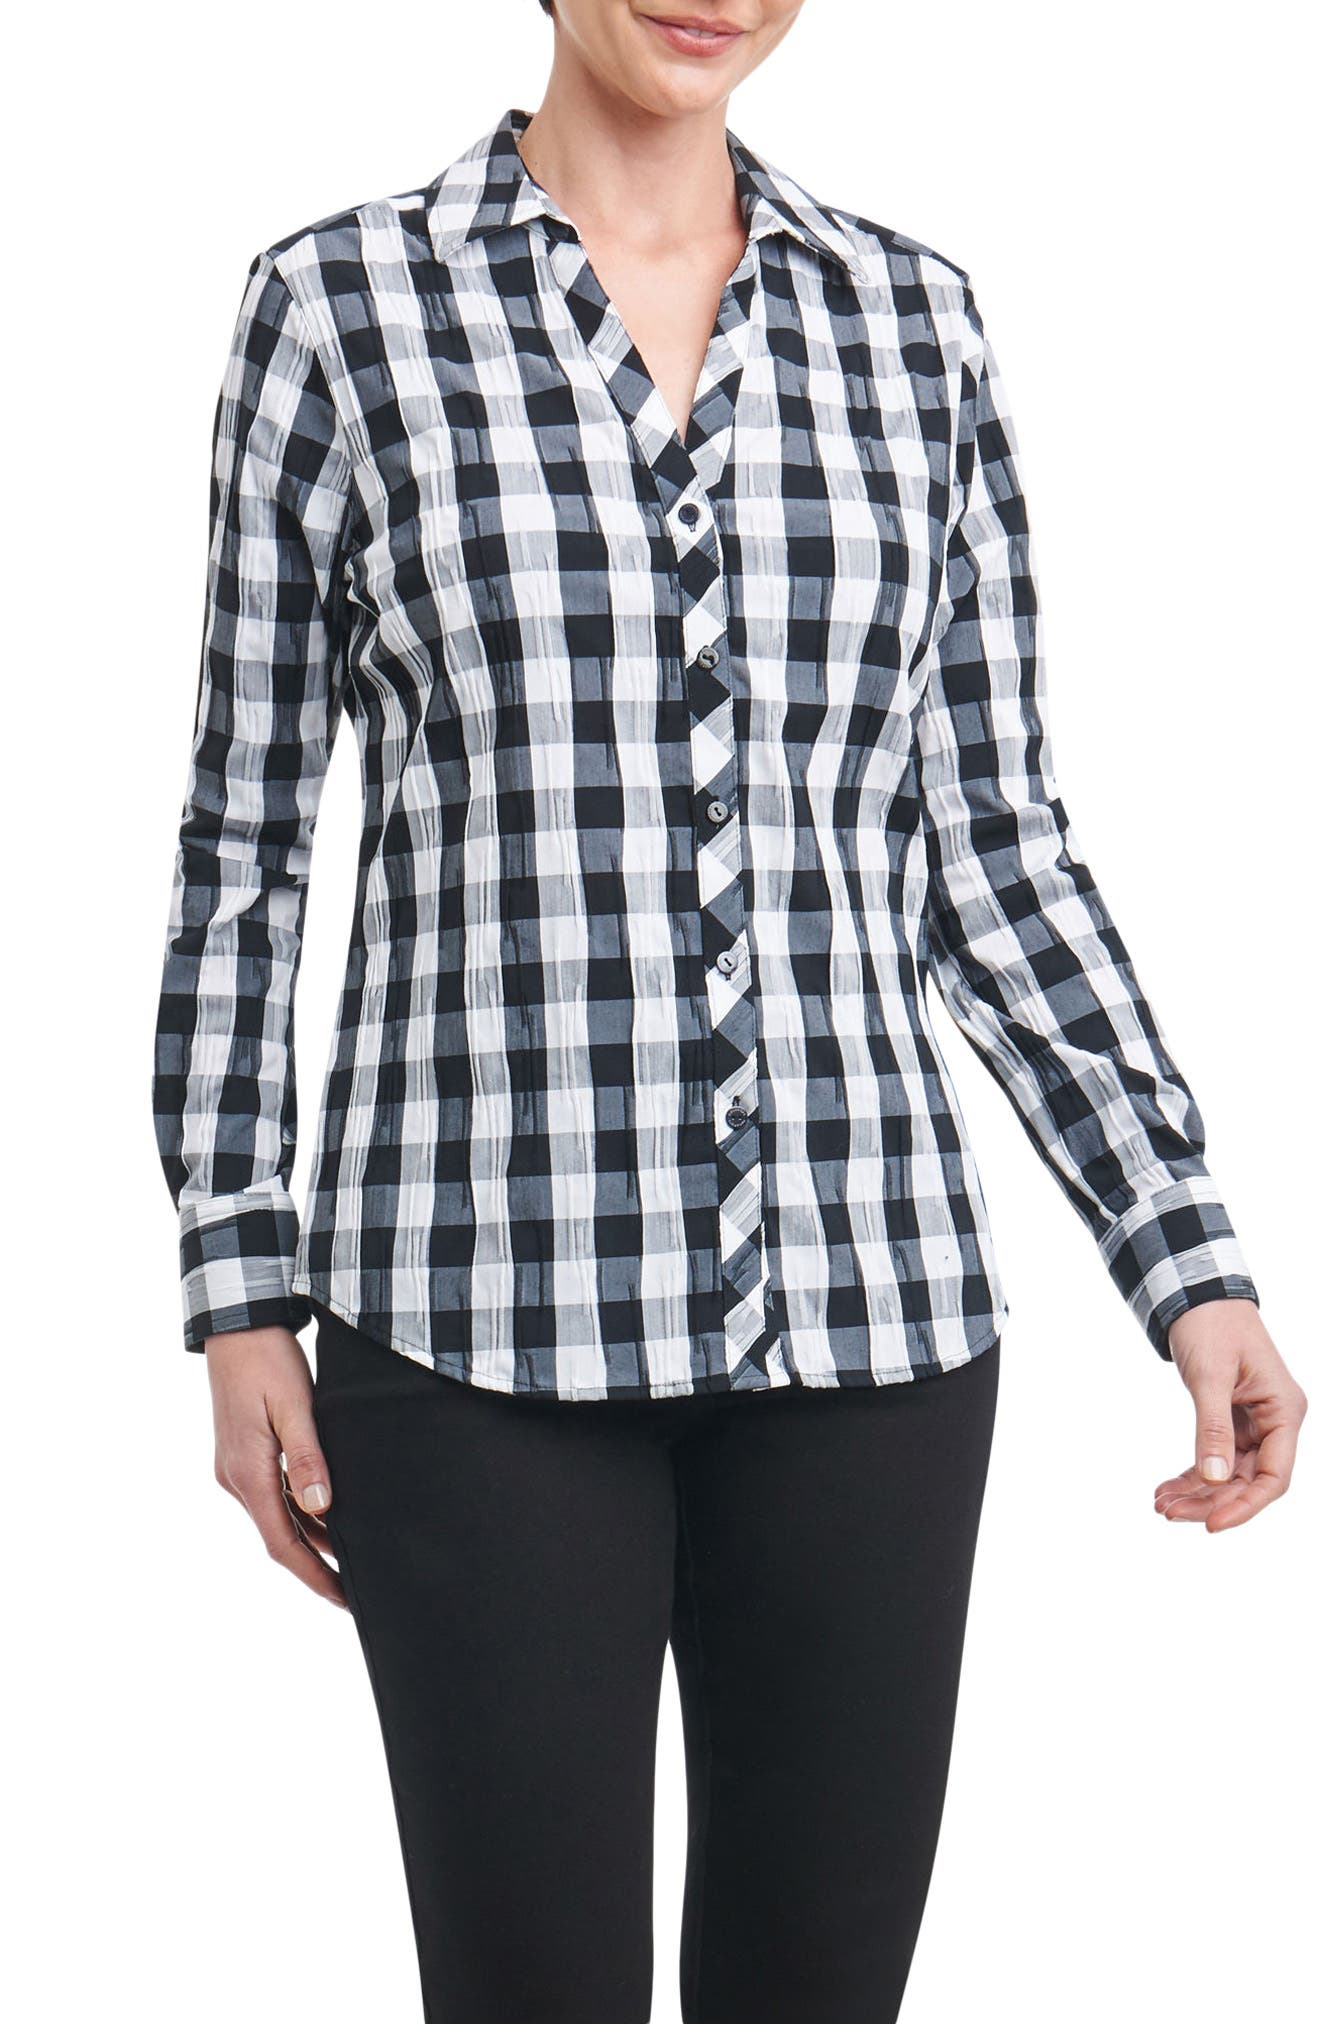 Mary Buffalo Check Crinkle Shirt,                             Main thumbnail 1, color,                             100